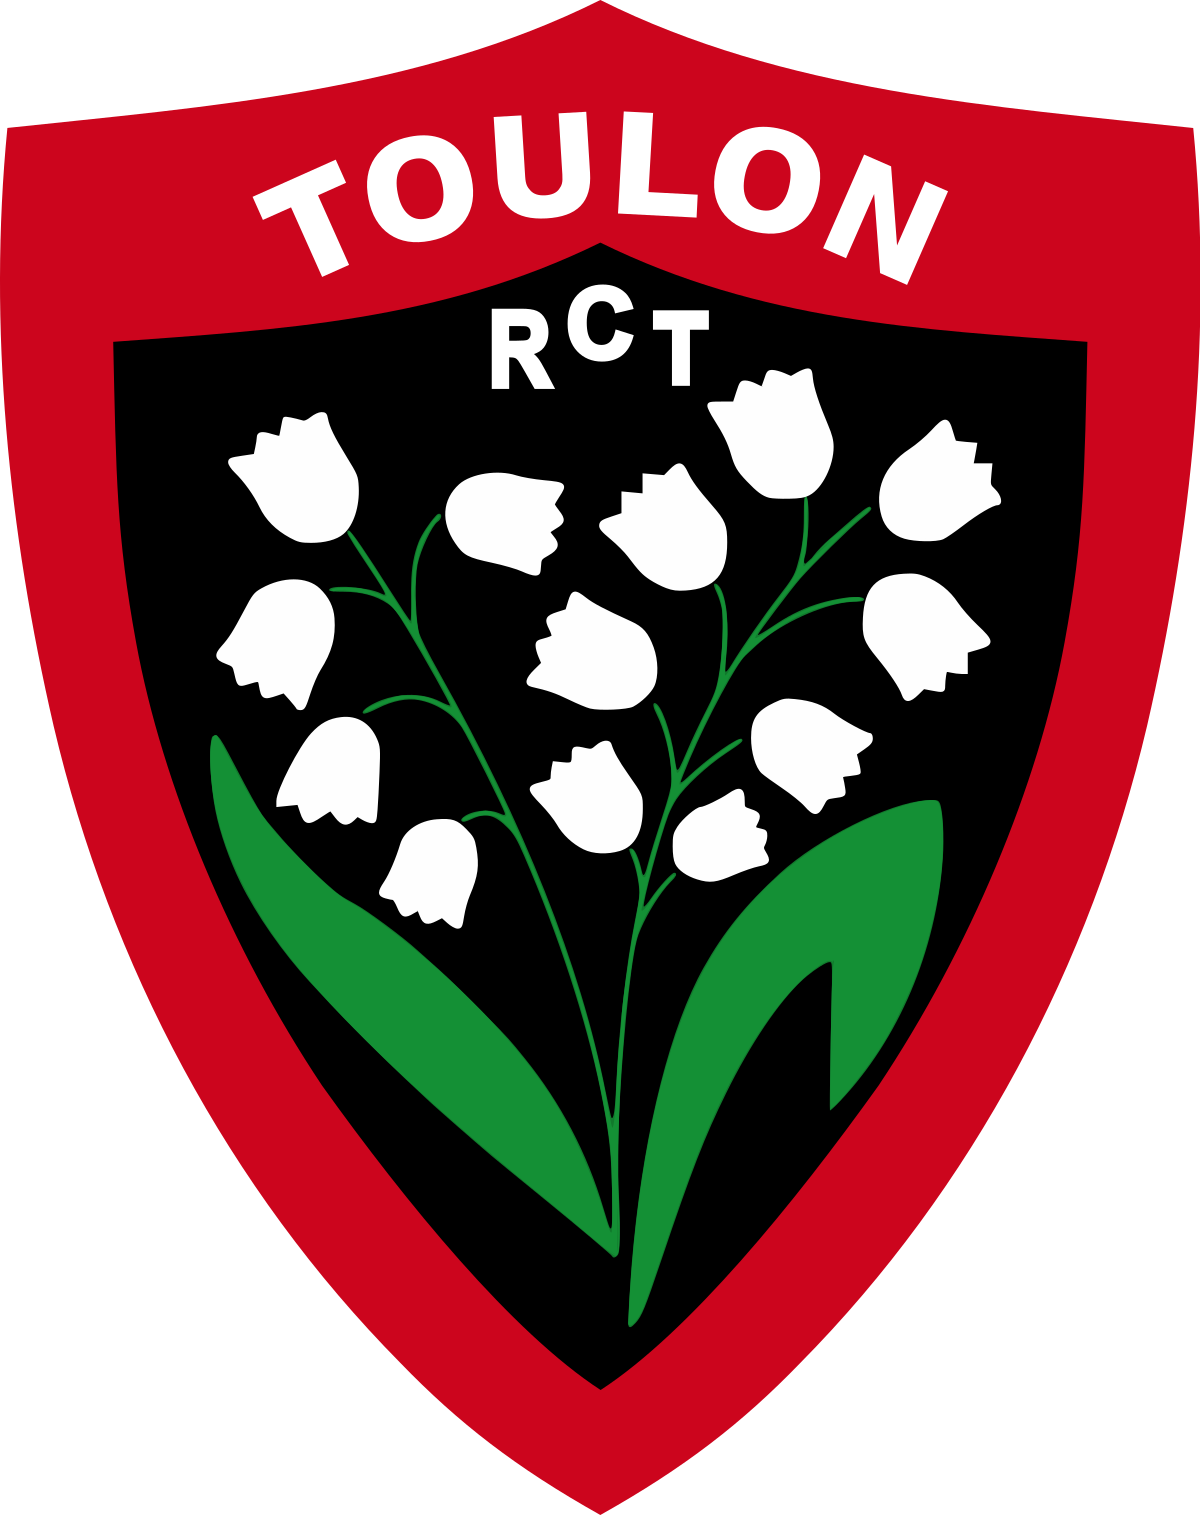 Boutique Rugby Toulon - RCT